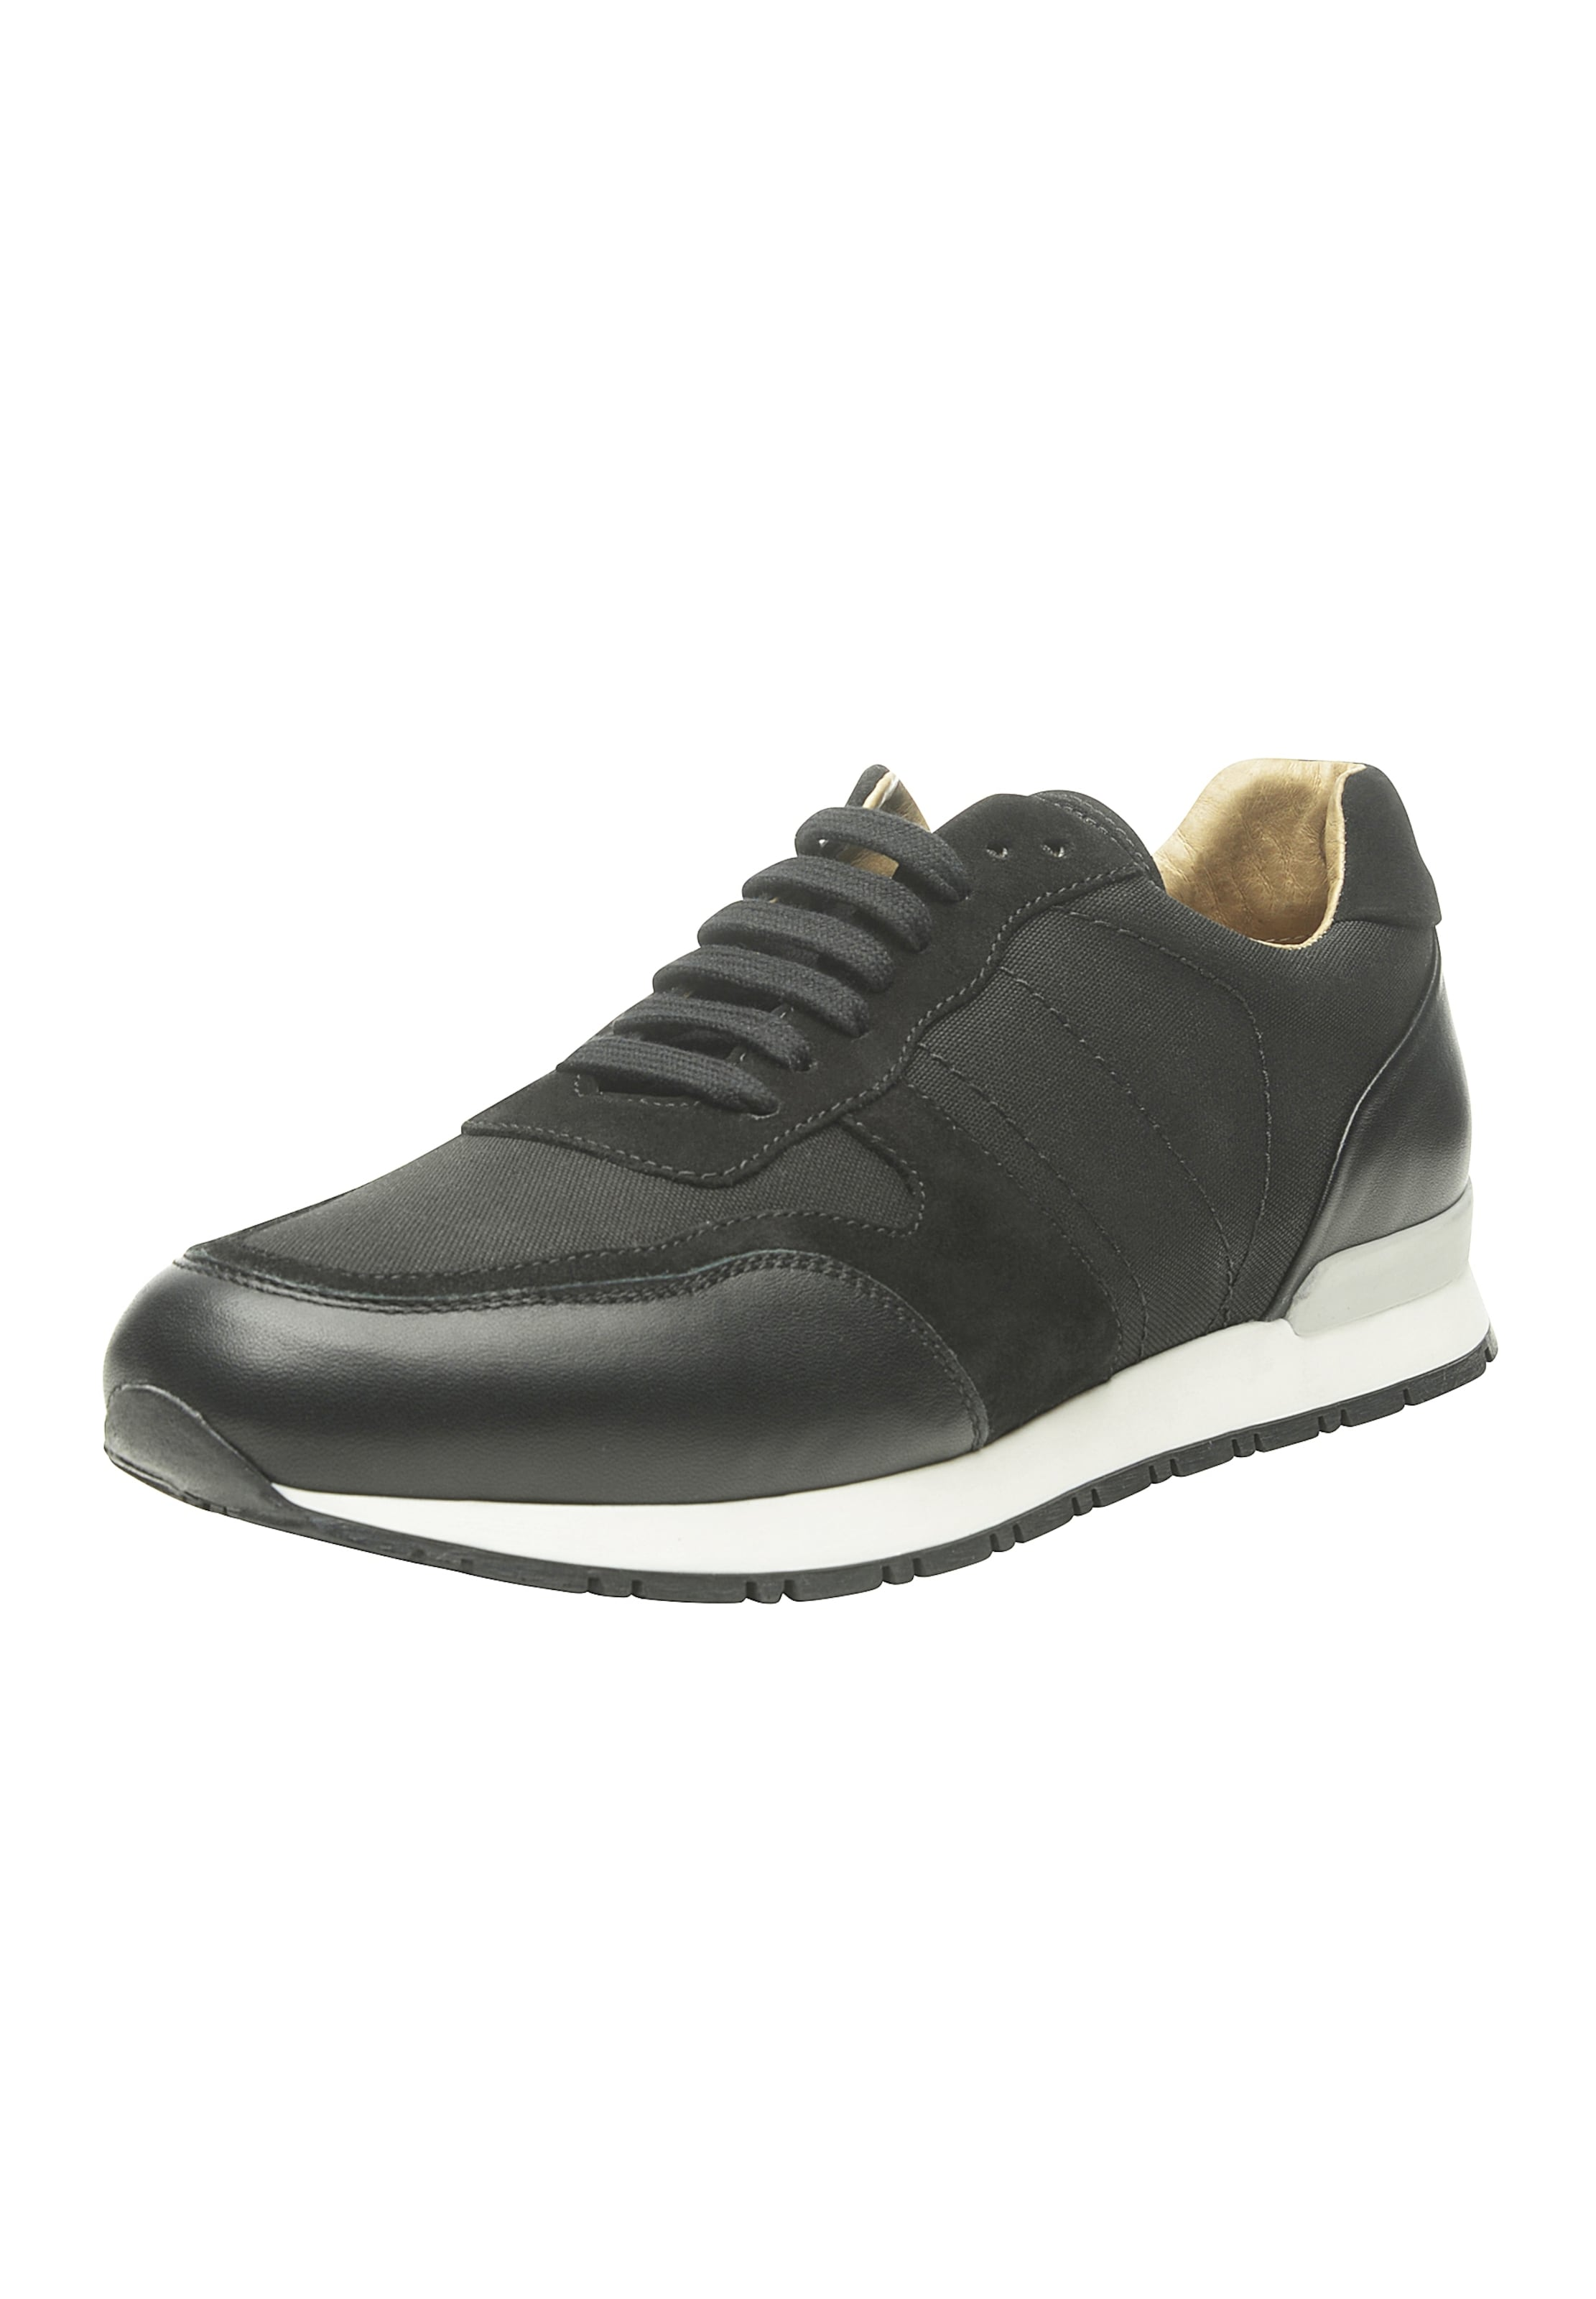 SHOEPASSION | Turnschuhe No. 10 MS MS 10 e75aee